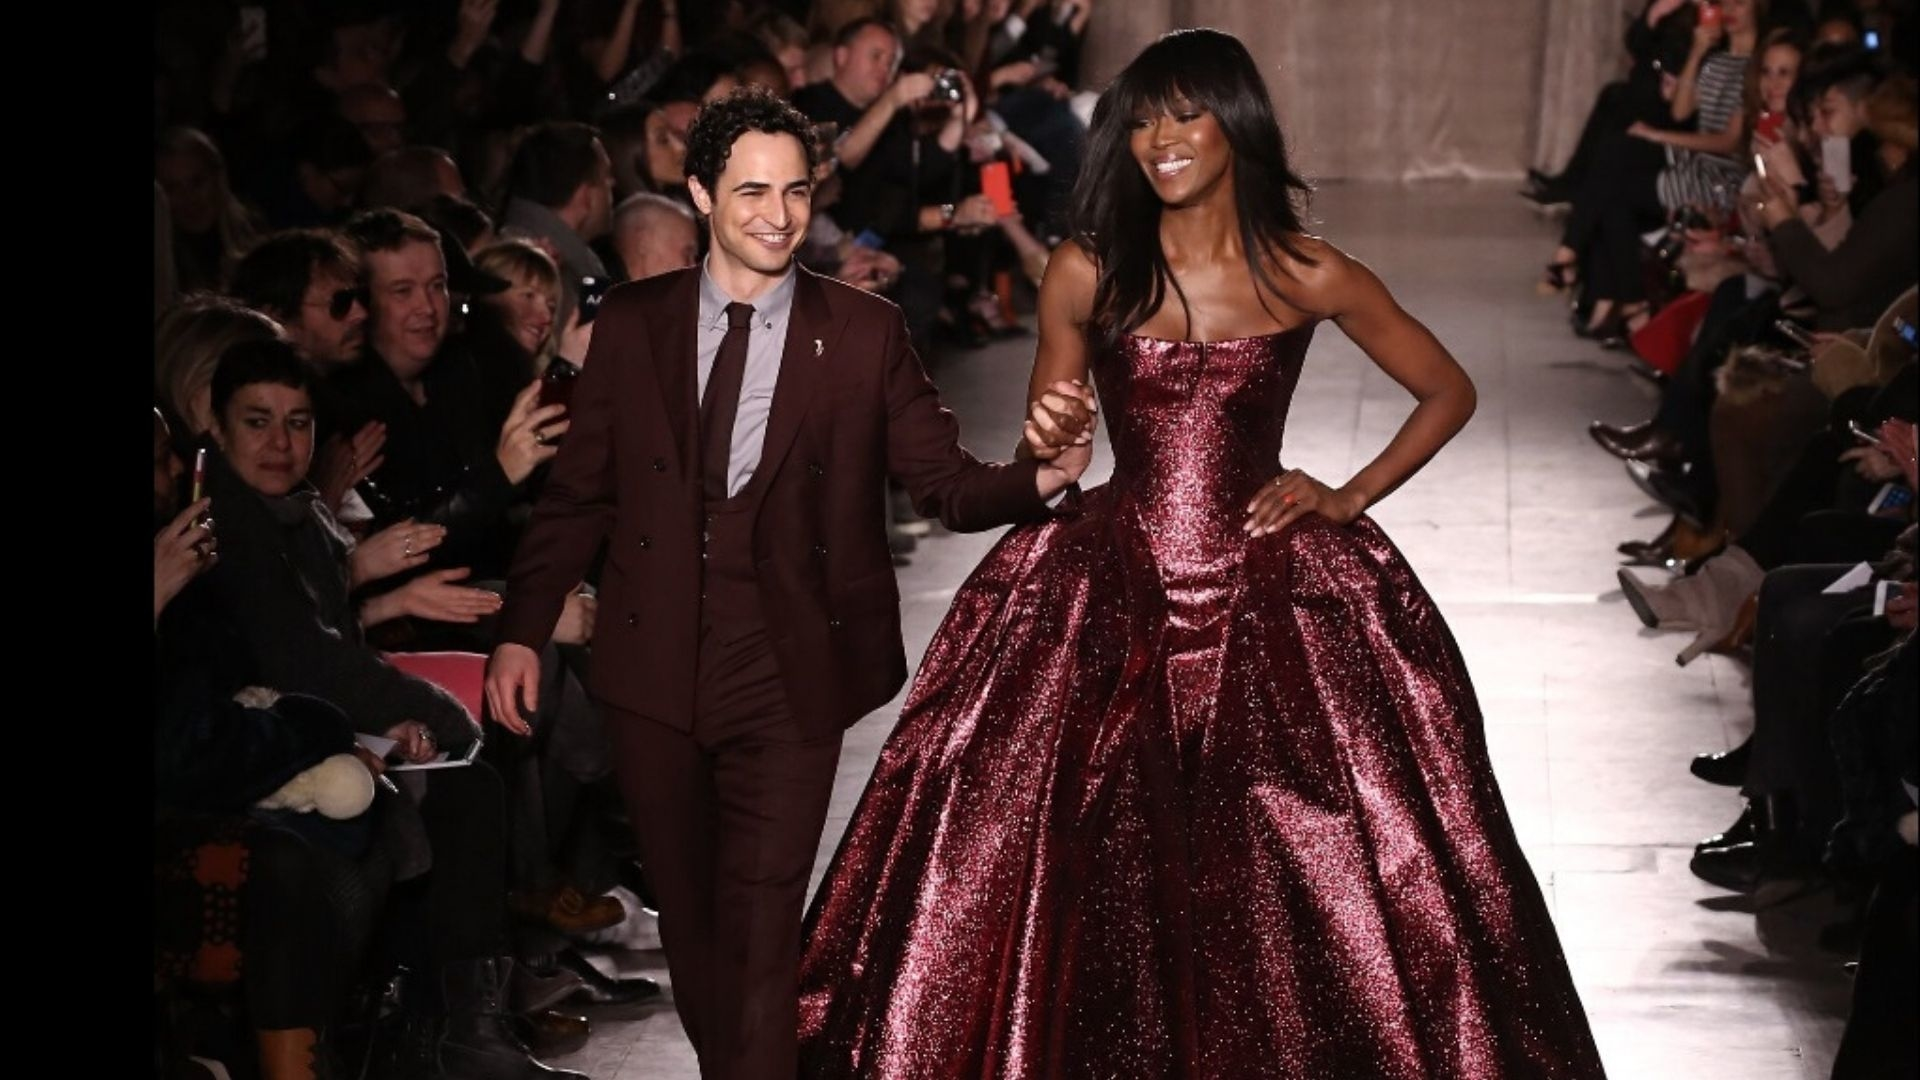 Zac Posen Closes Down After Failing To Find New Investors